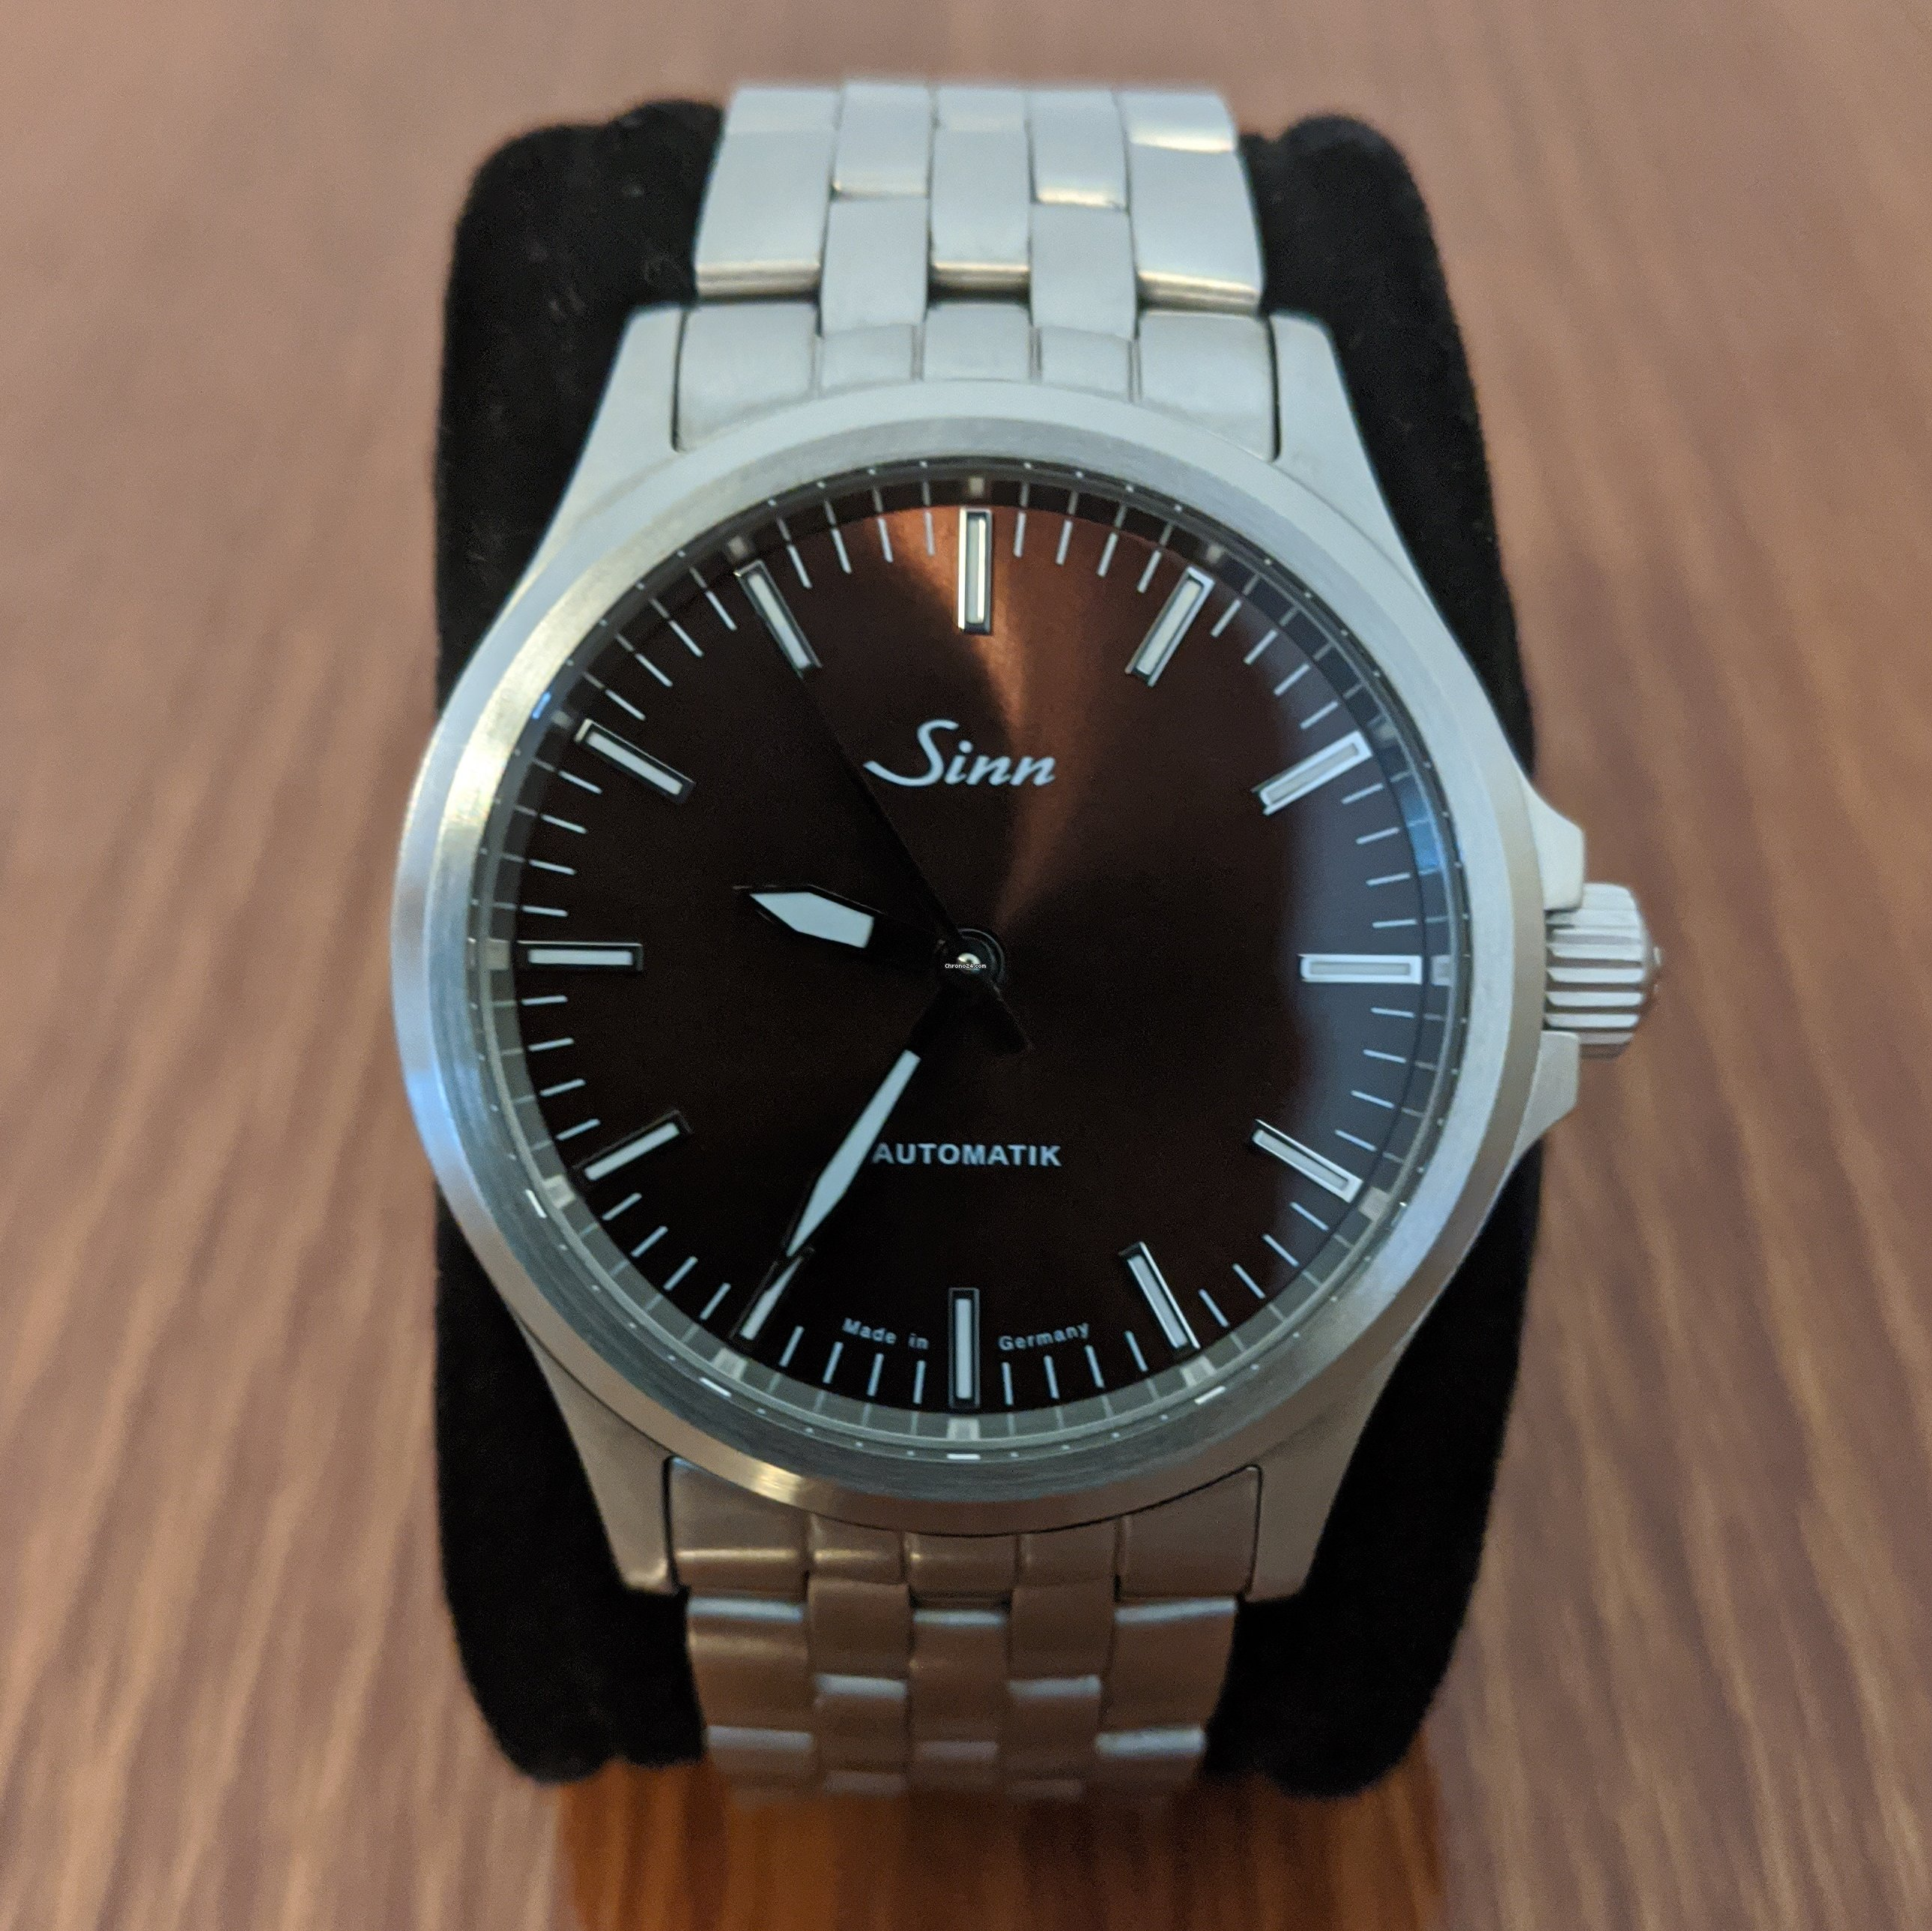 Sinn 556 I M for £891 for sale from a Private Seller on Chrono24